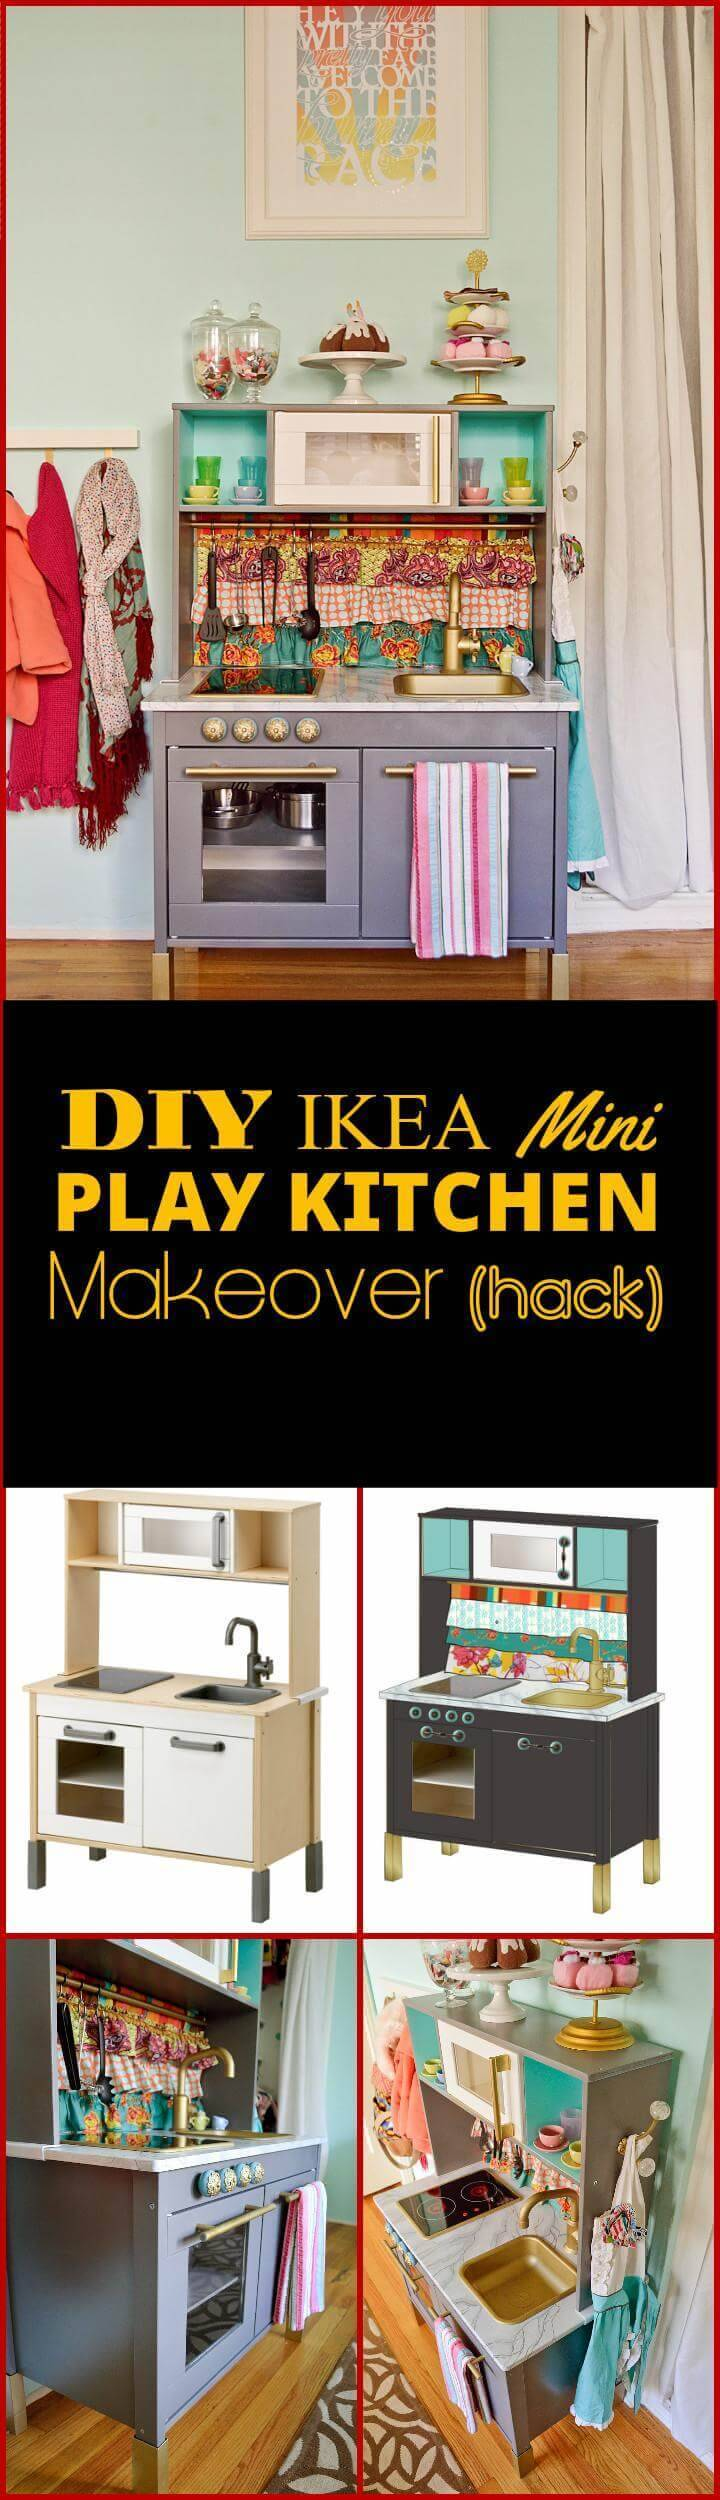 DIY ikea hack mini play kitchen